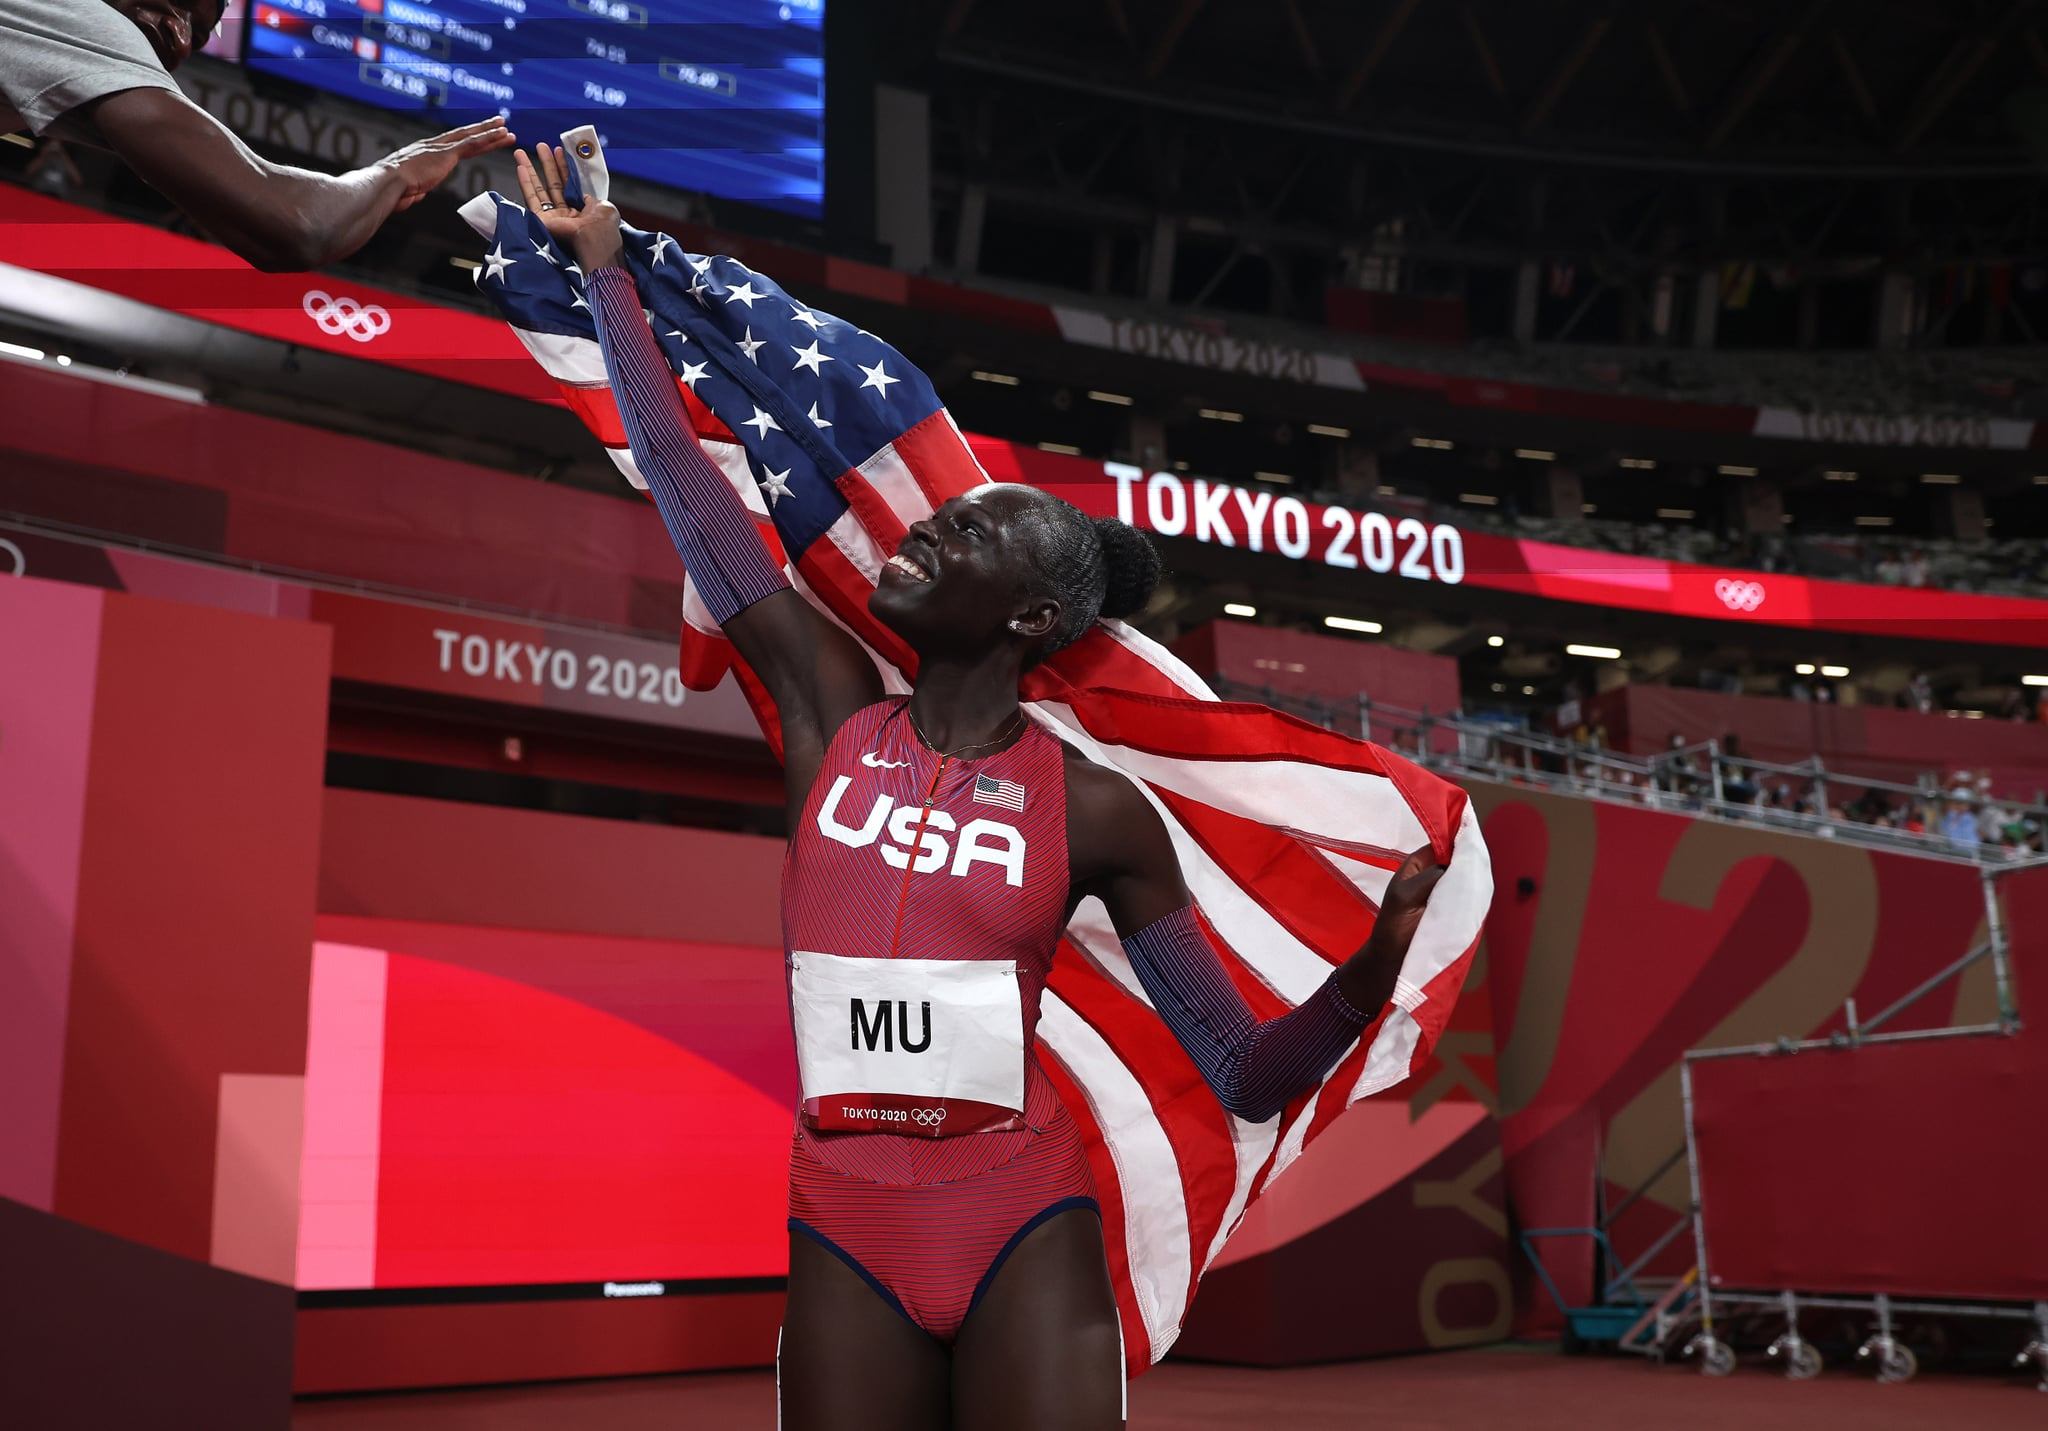 TOKYO, JAPAN - AUGUST 03: Athing Mu of Team United States reacts after winning the gold medal in the Women's 800m Final on day eleven of the Tokyo 2020 Olympic Games at Olympic Stadium on August 03, 2021 in Tokyo, Japan. (Photo by Patrick Smith/Getty Images)